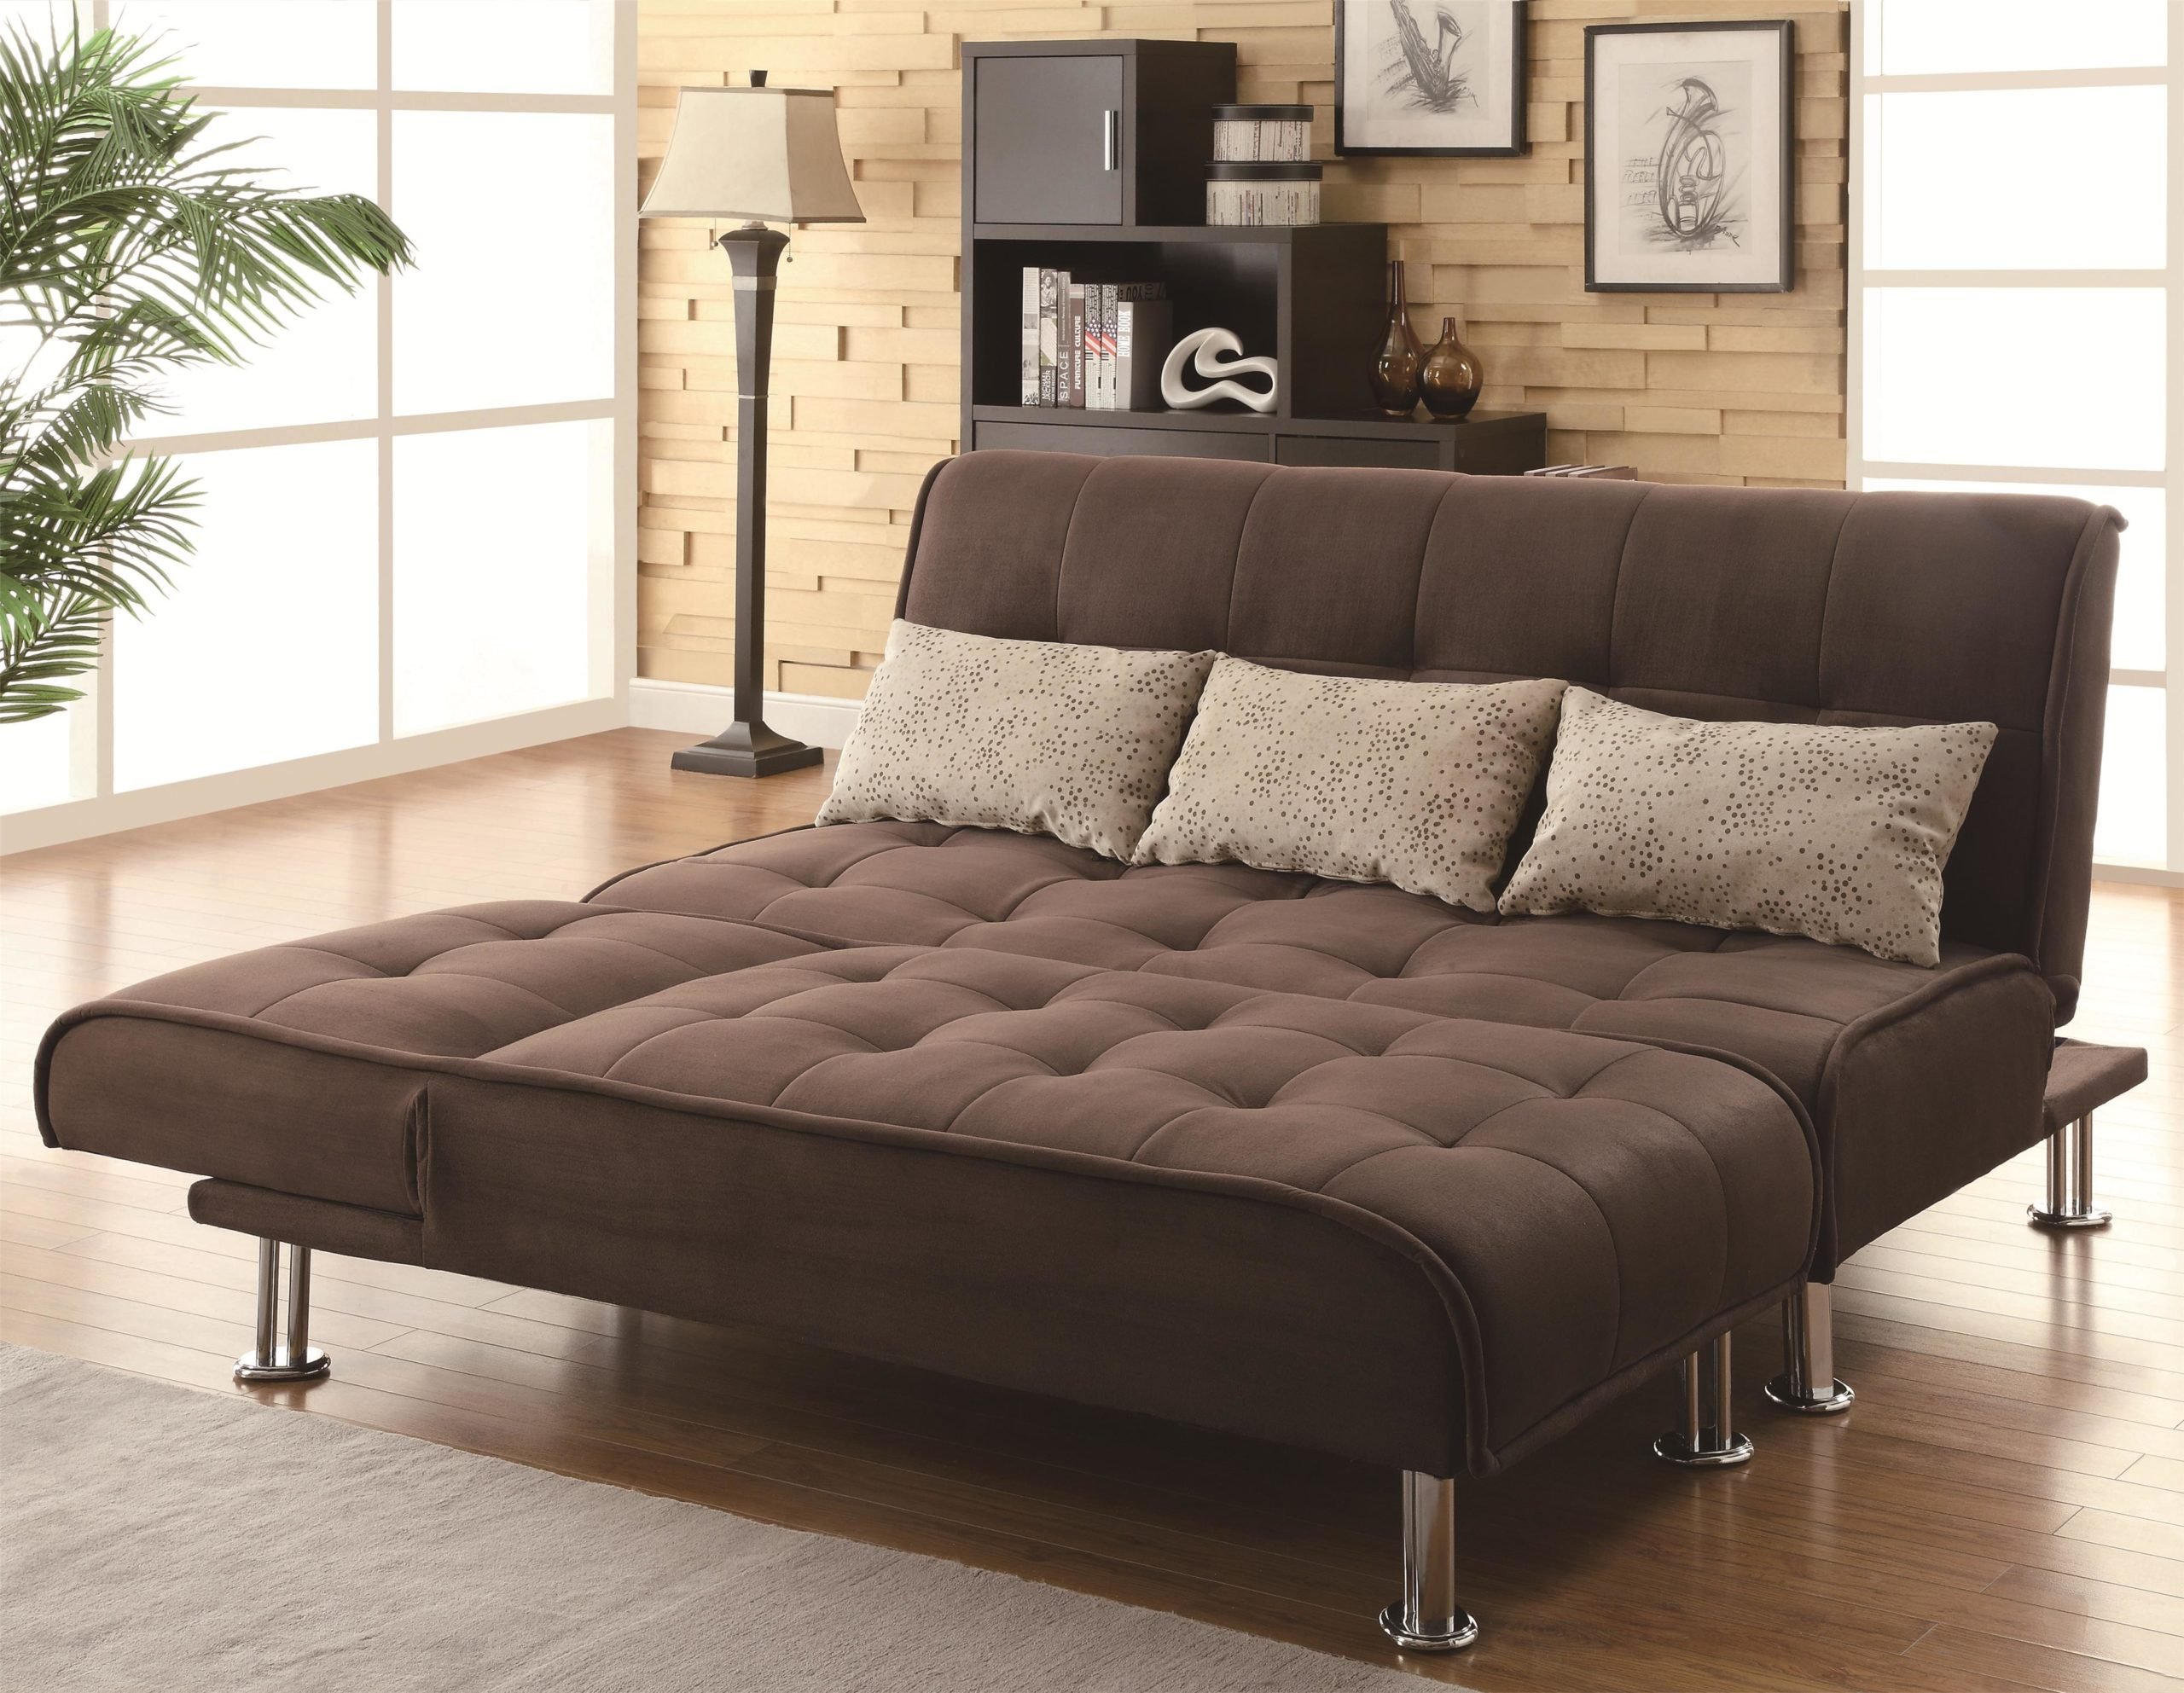 Brown Transitional Styled Sofa Sleeper Futon Bed half down